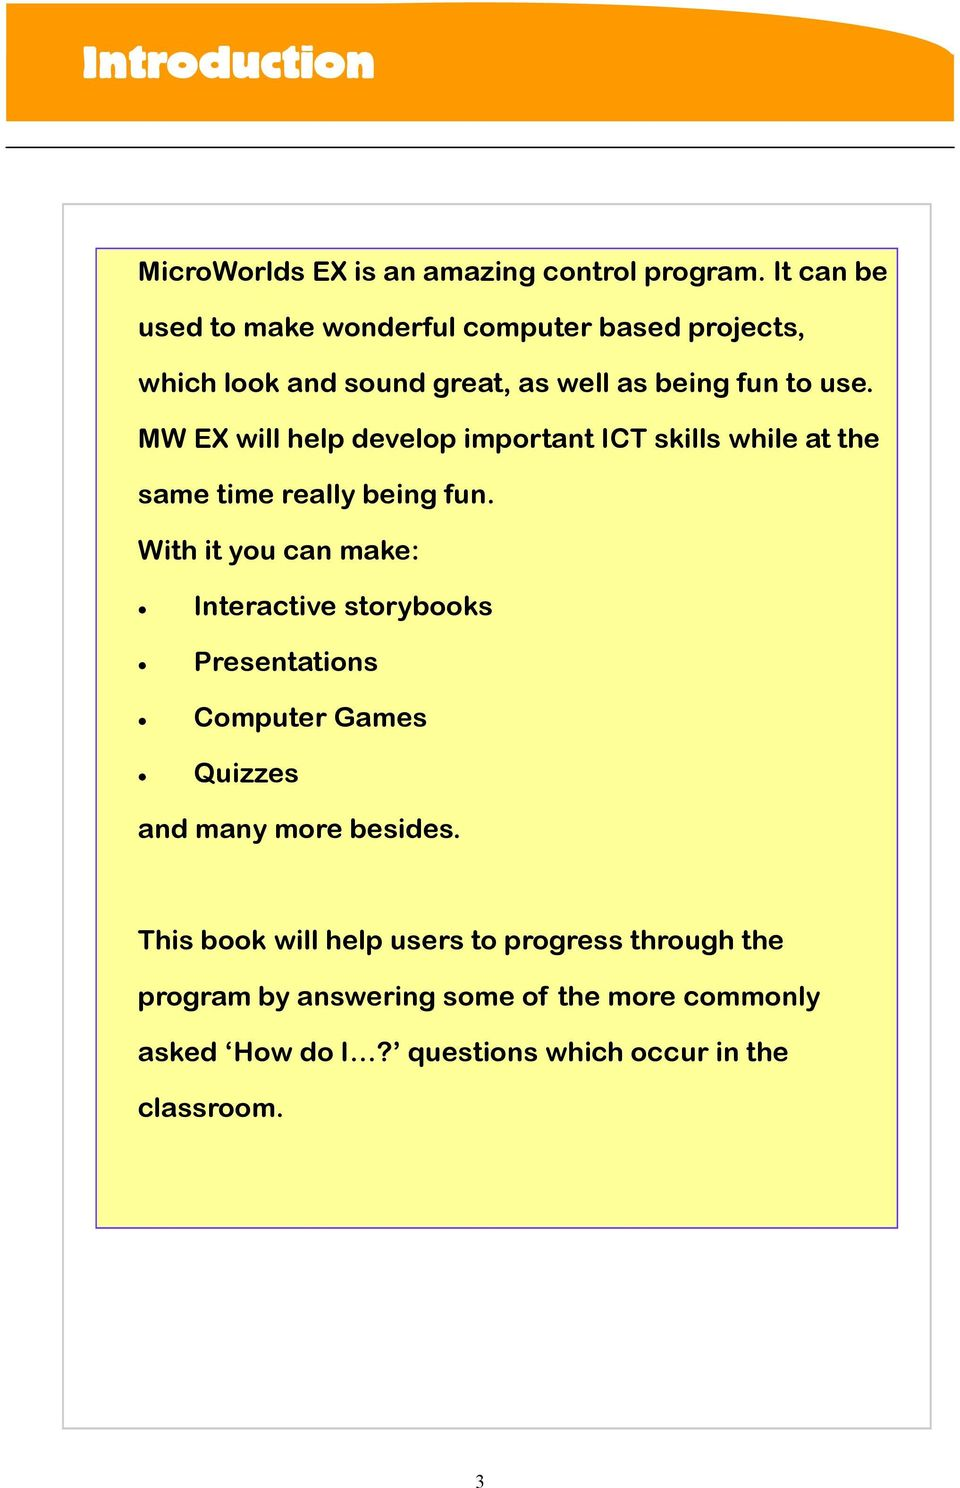 MW EX will help develop important ICT skills while at the same time really being fun.